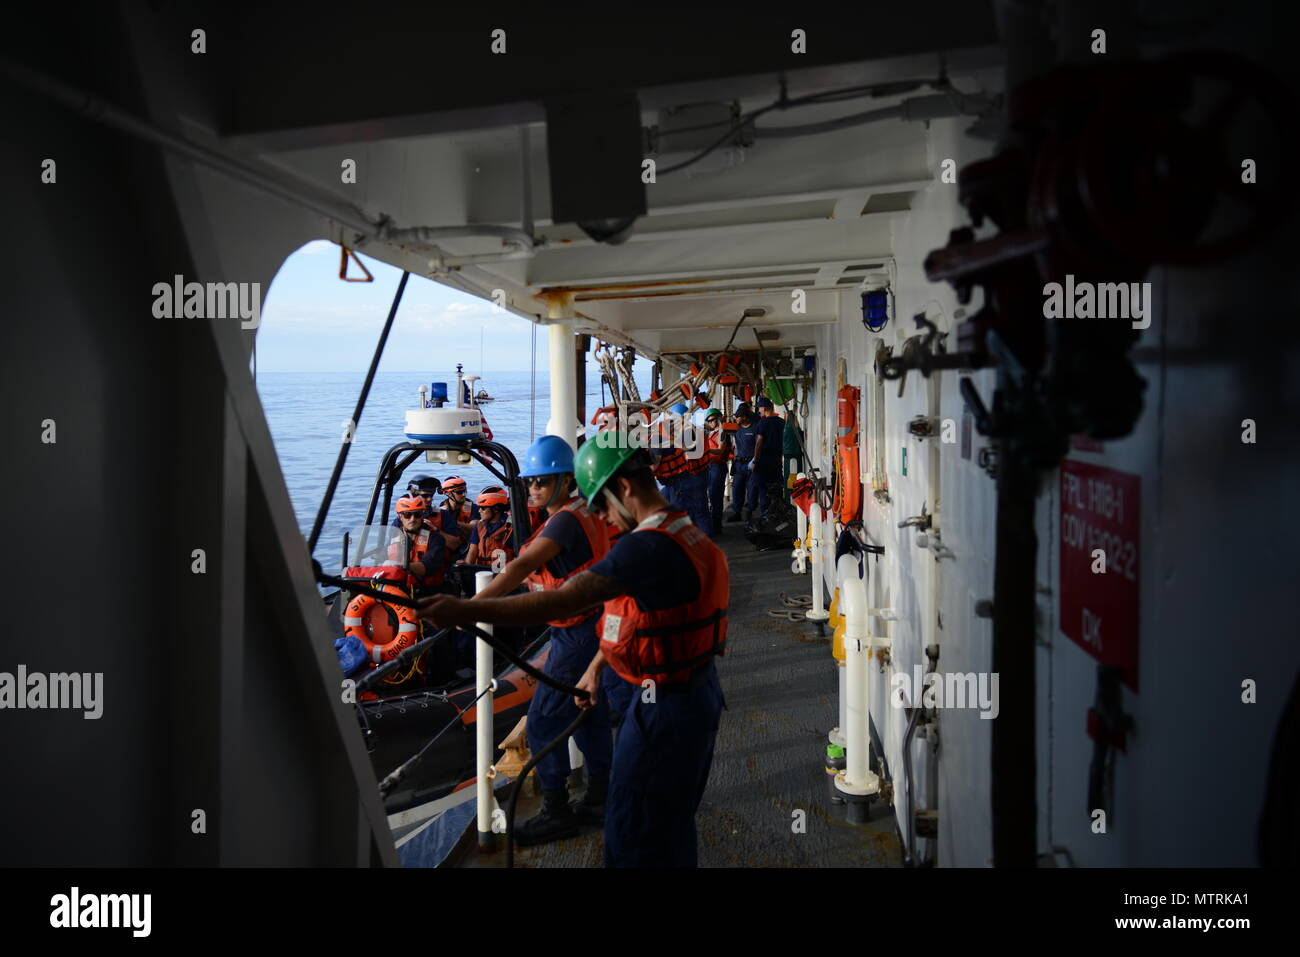 EASTERN PACIFIC OCEAN – Crewmembers from the Coast Guard Cutter Sherman recover the cutter's small boat, Jan. 9, 2017. Sherman, homeported in Honolulu, is on counter narcotics mission in the Eastern Pacific Ocean. Cutters like Sherman routinely conduct operations from South America to the Bering Sea conducting alien migrant interdiction operations, domestic fisheries protection, search and rescue, counter-narcotics and other Coast Guard missions at great distances from shore keeping threats far from the U.S. mainland. (FOR RELEASE U.S. Coast Guard photo Chief Warrant Officer Allyson E.T. Conro - Stock Image